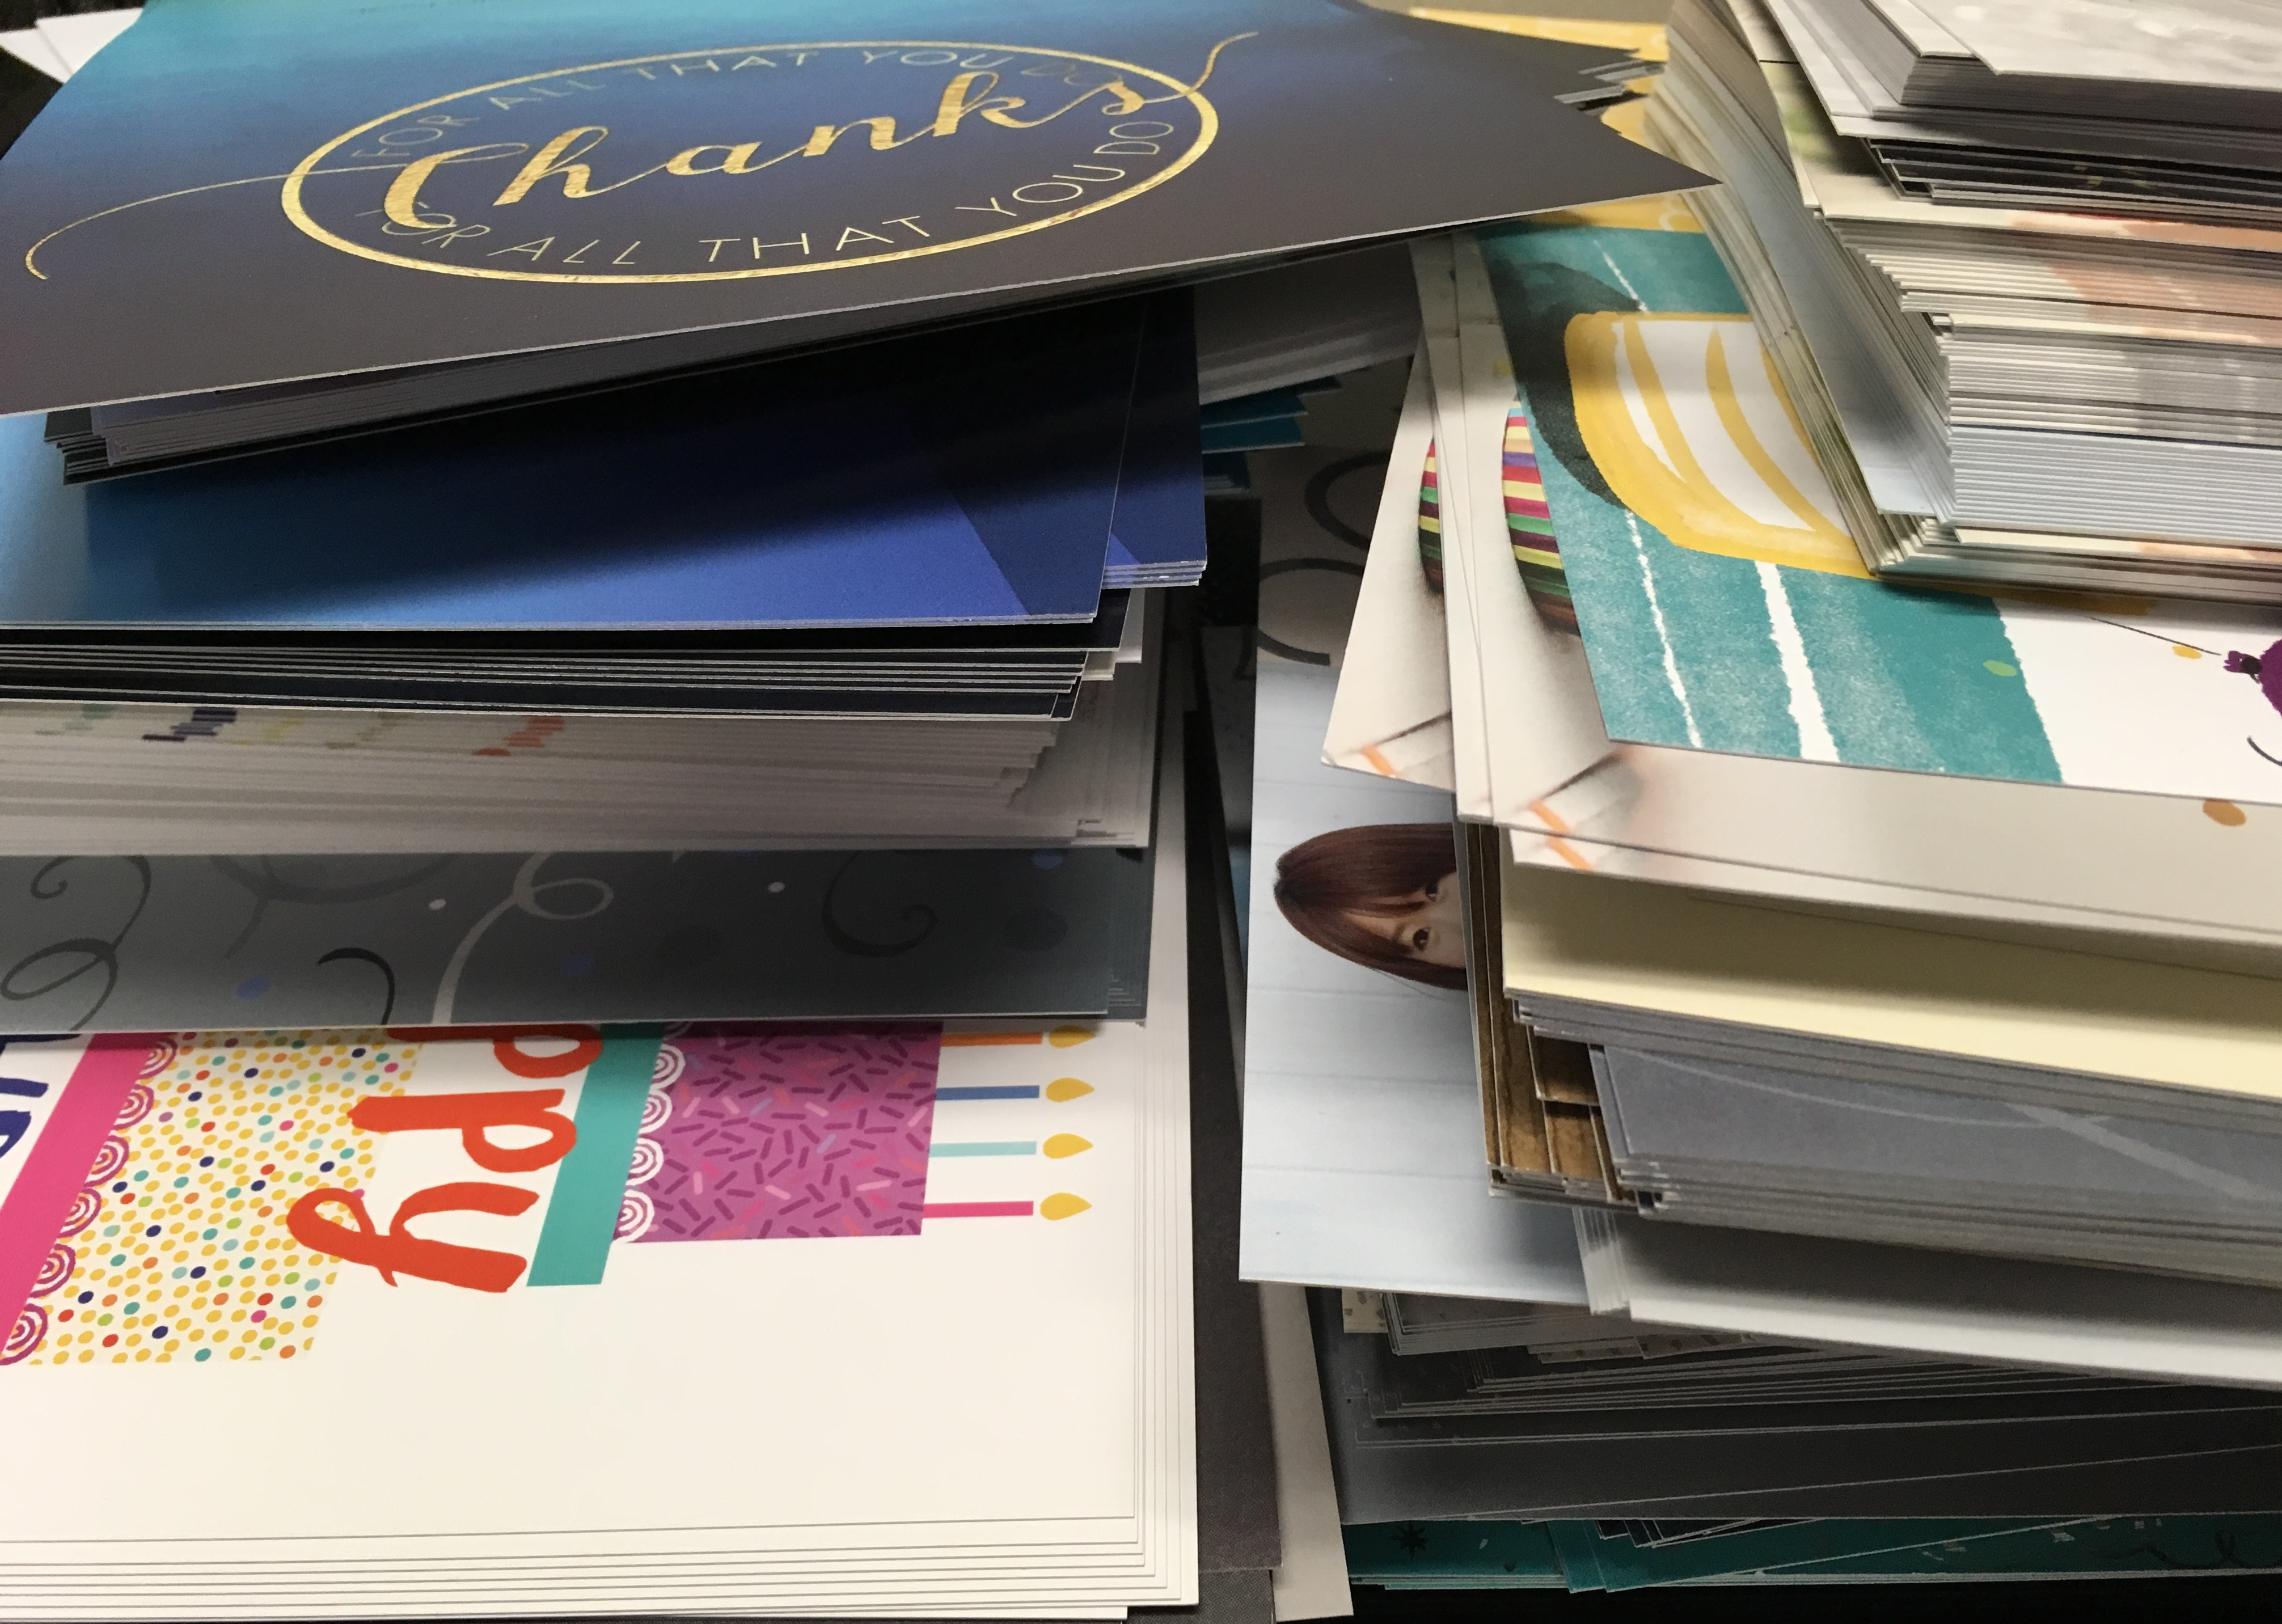 A large pile of various greeting cards in different colors.